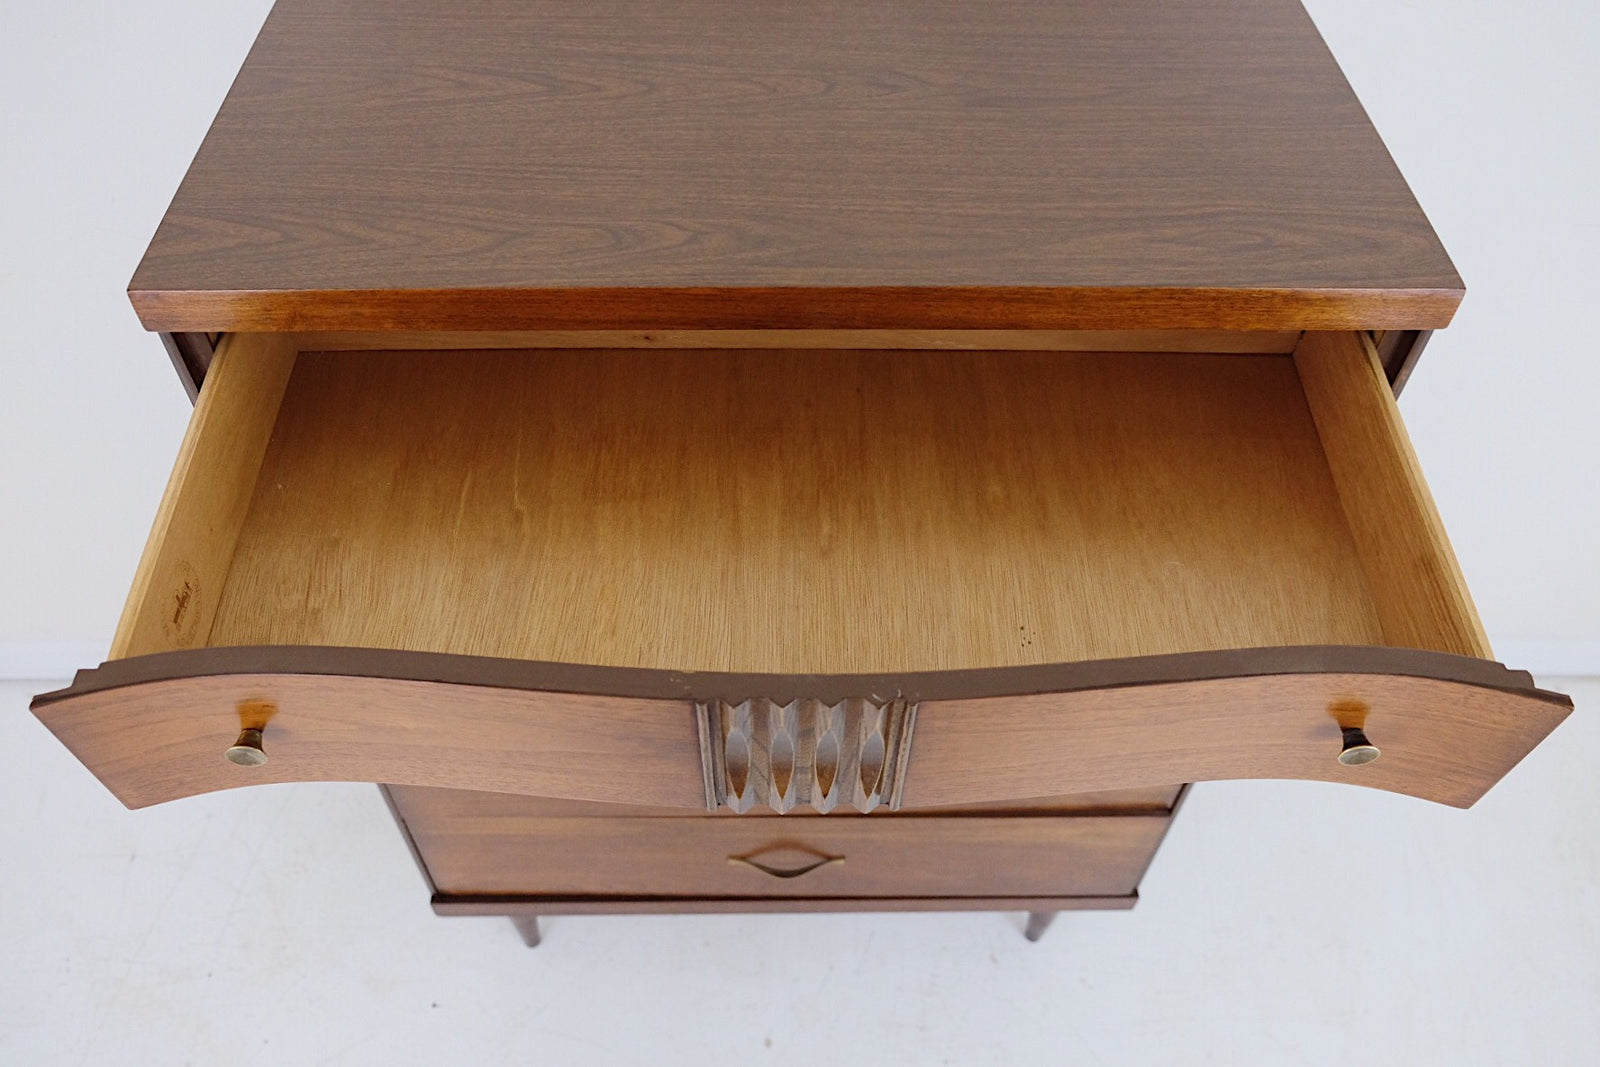 Bassett Tall Mid Century Modern Dresser 4 Drawers Carved Detail Brass Handles